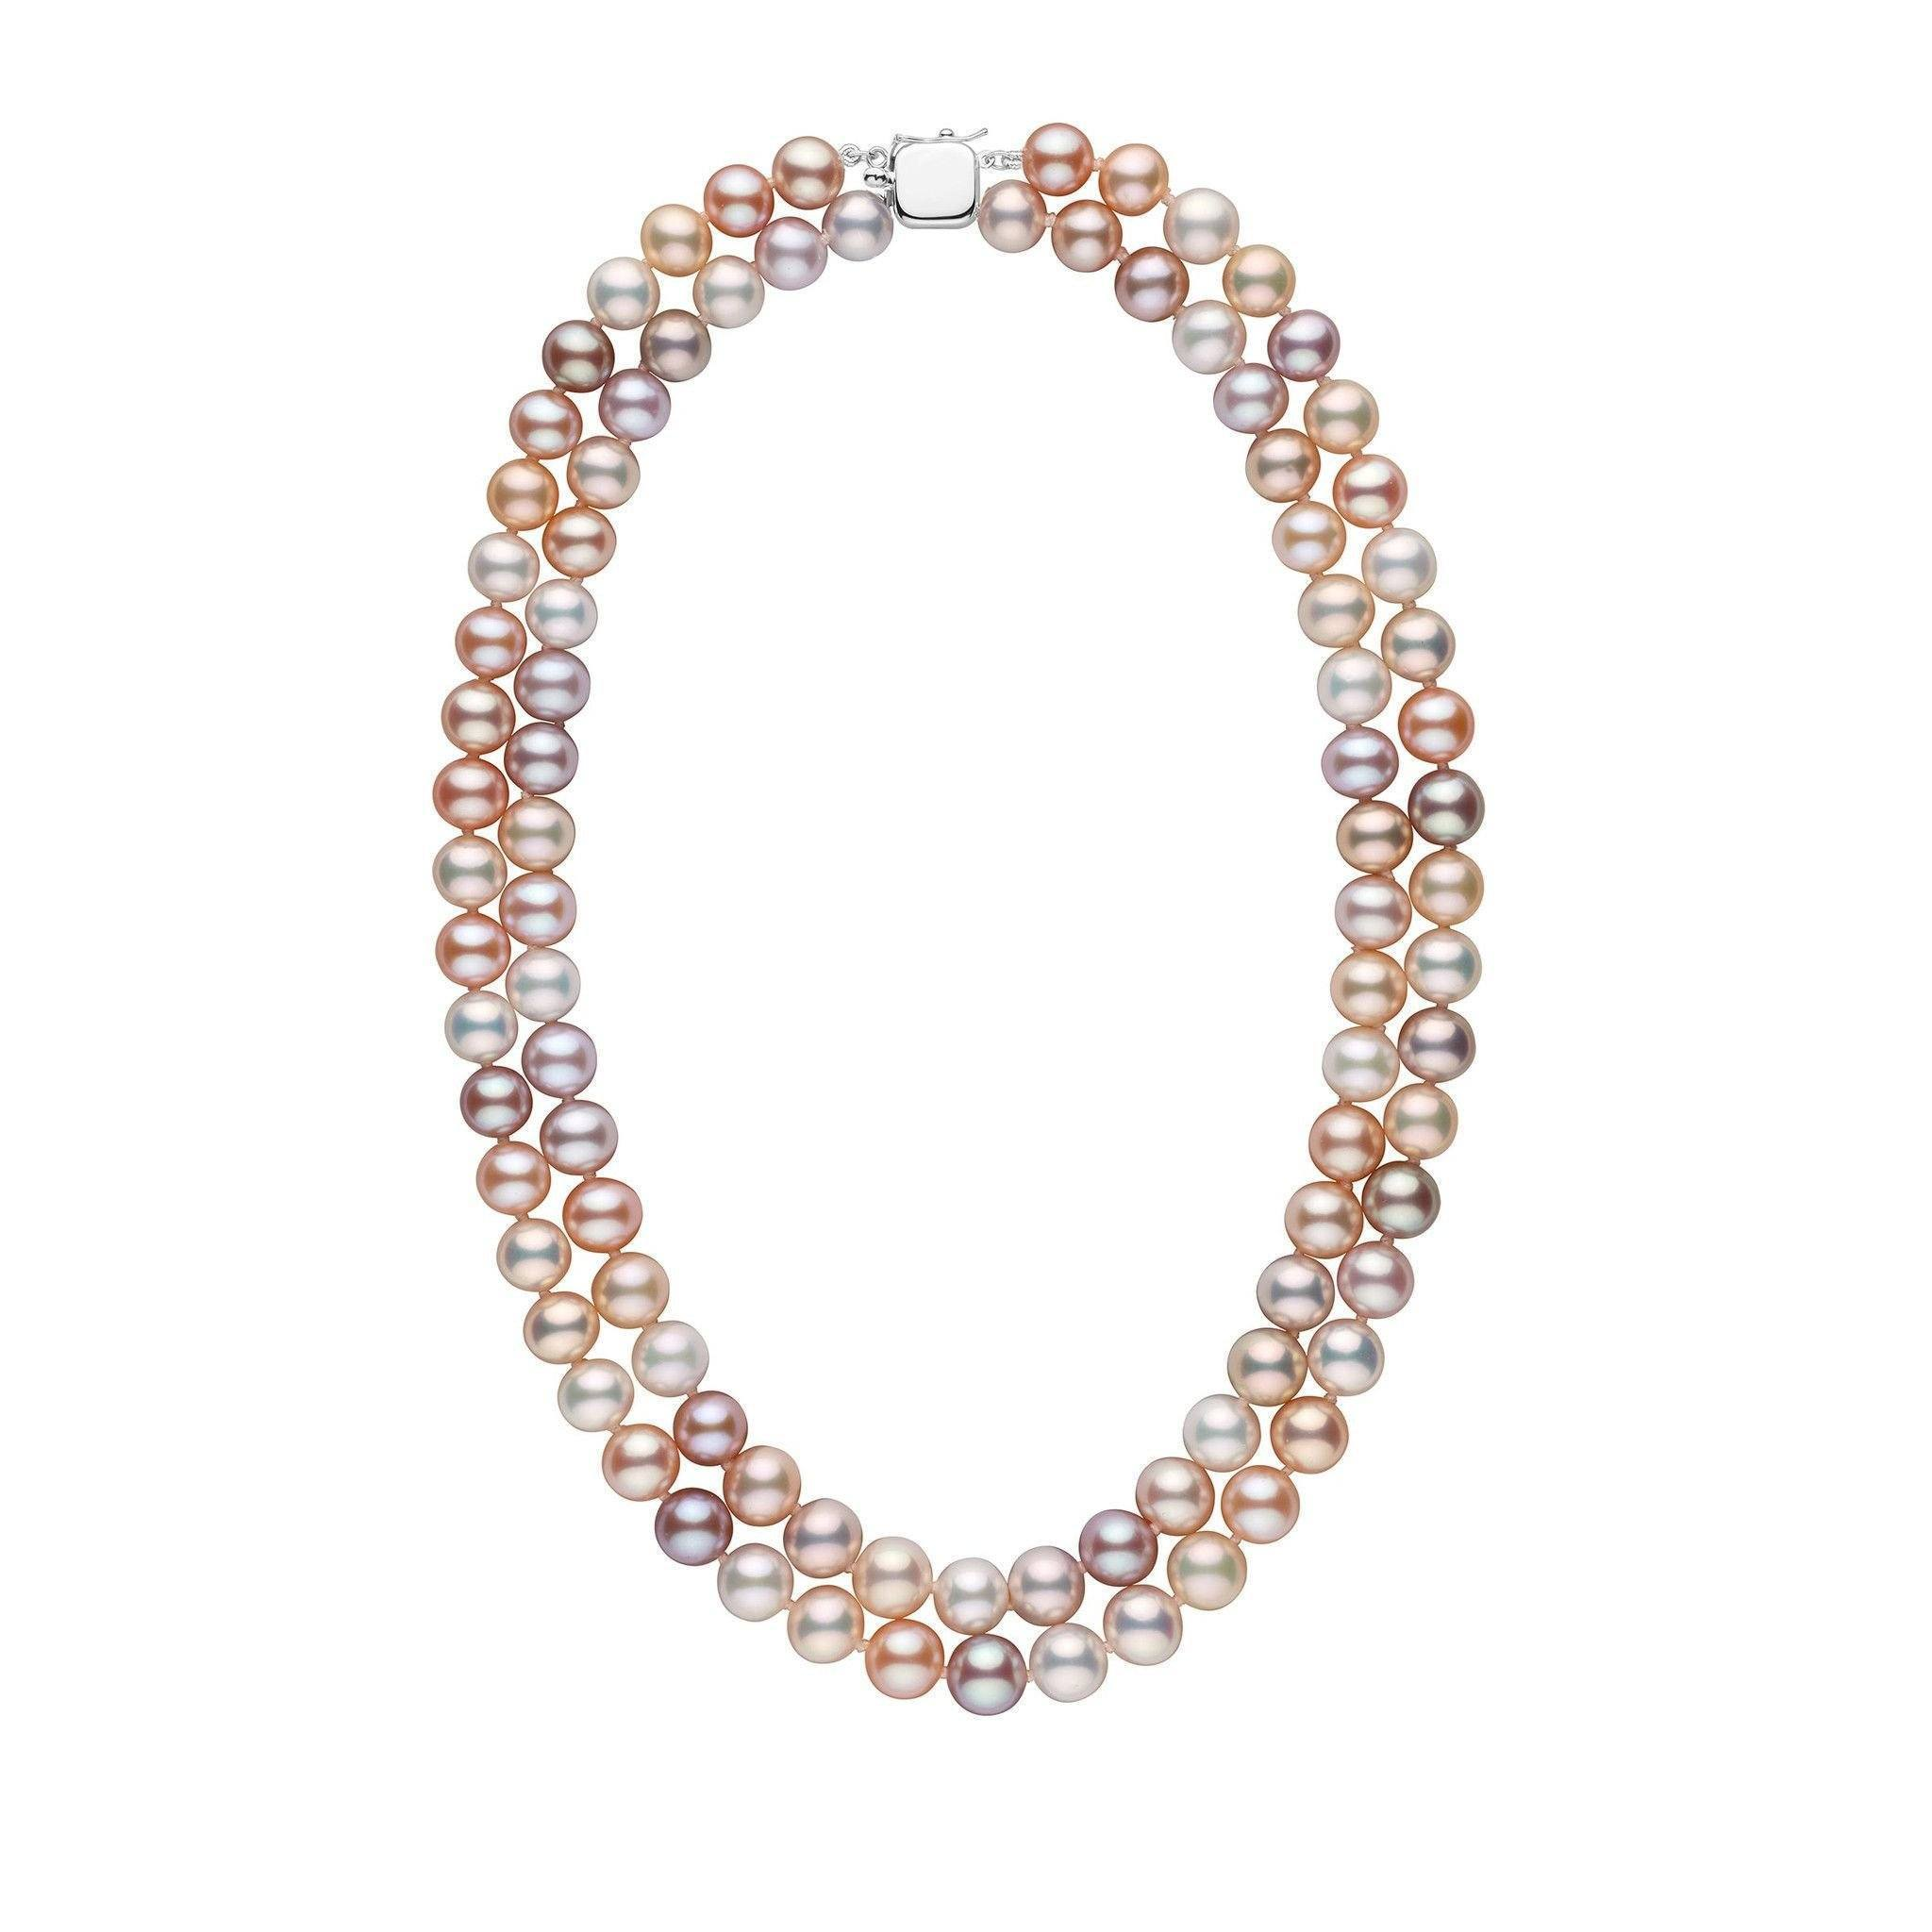 Double Strand 8.5-9.0 mm AAA Multicolor Freshwater Pearl Necklace